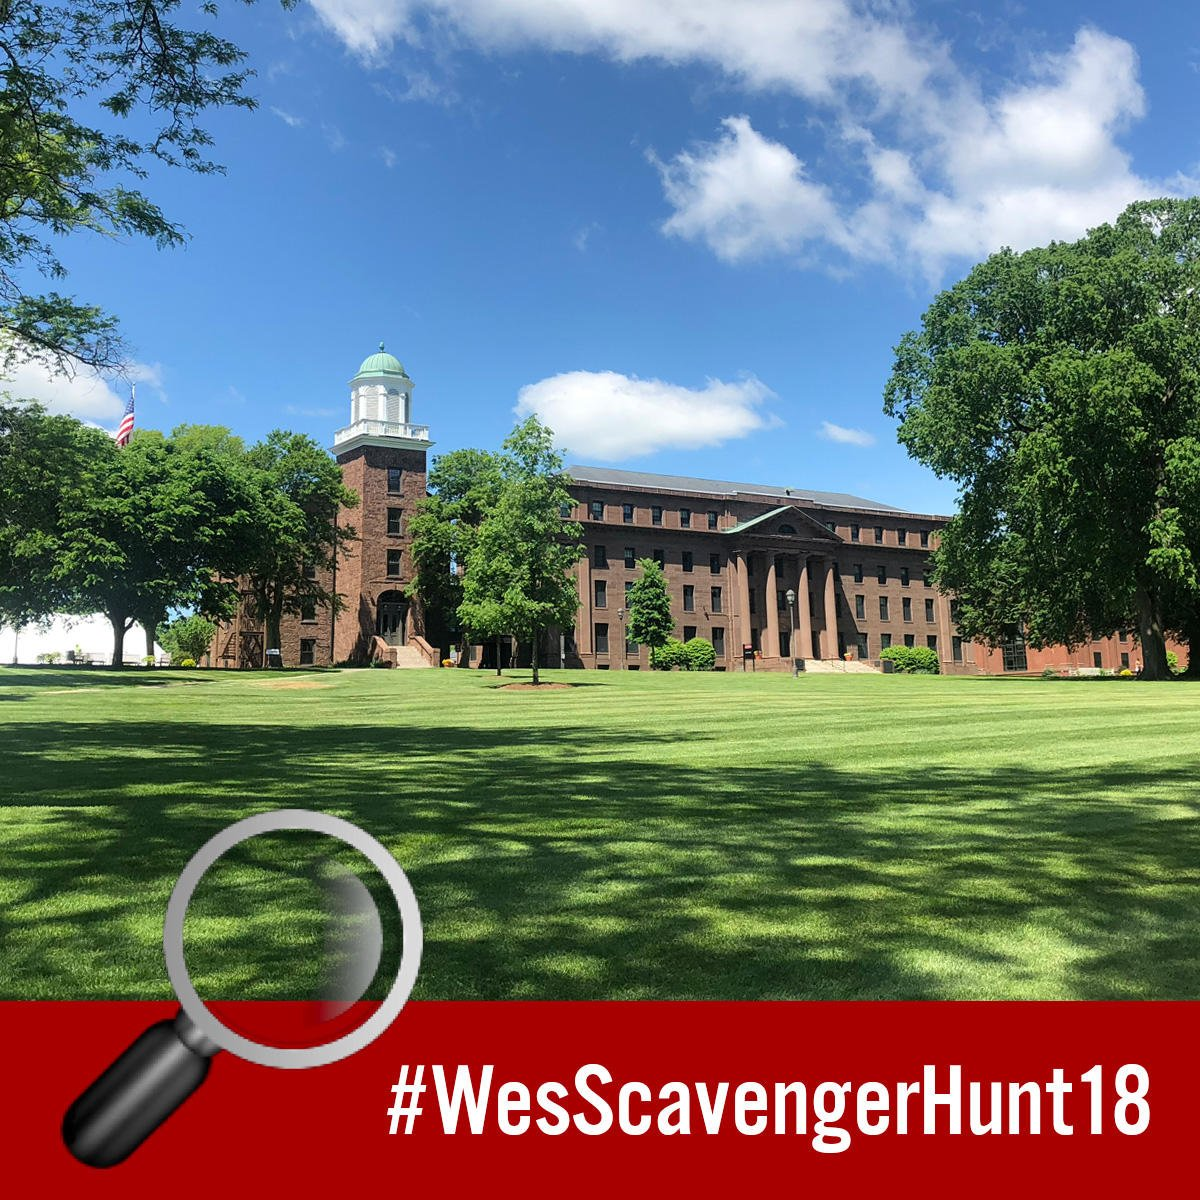 test Twitter Media - 🔍 Clue 2: Take a photo of the house that became a National Historic Landmark in 2001 for its role in the China trade. #WesScavengerHunt18 #NationalScavengerHuntDay   More clues: https://t.co/iwQIXnDb7K https://t.co/017mA9VWZ0